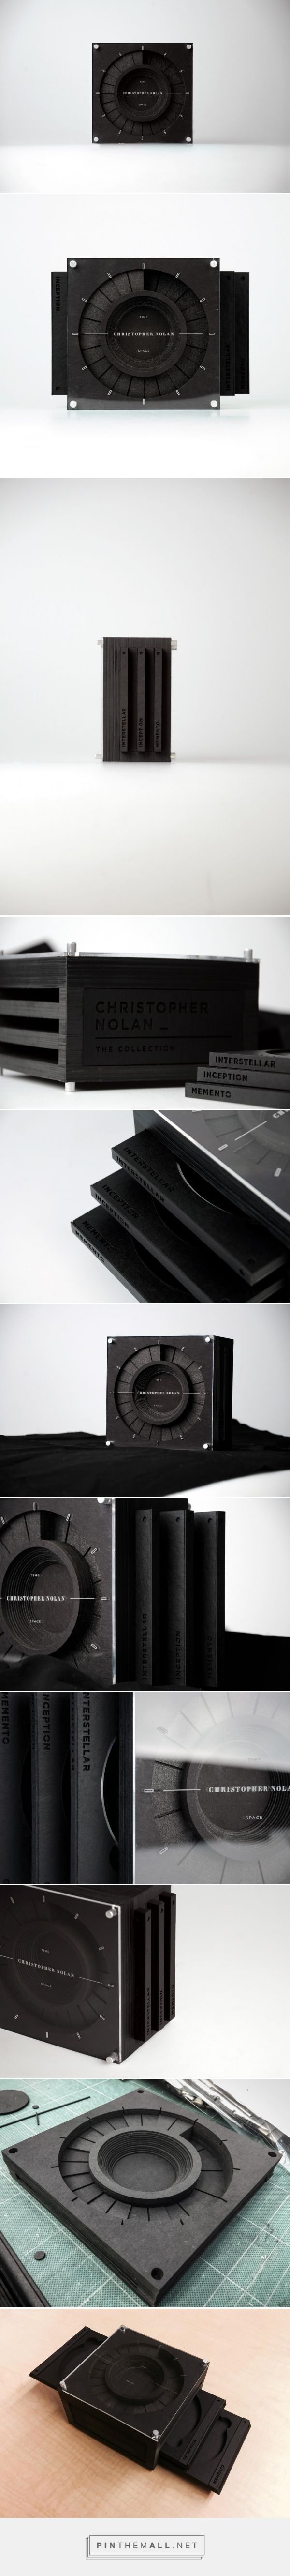 Christopher Nolan's Time X Space Collection packaging design by David Taehwan Lim - http://www.packagingoftheworld.com/2017/06/christopher-nolan-time-x-space.html